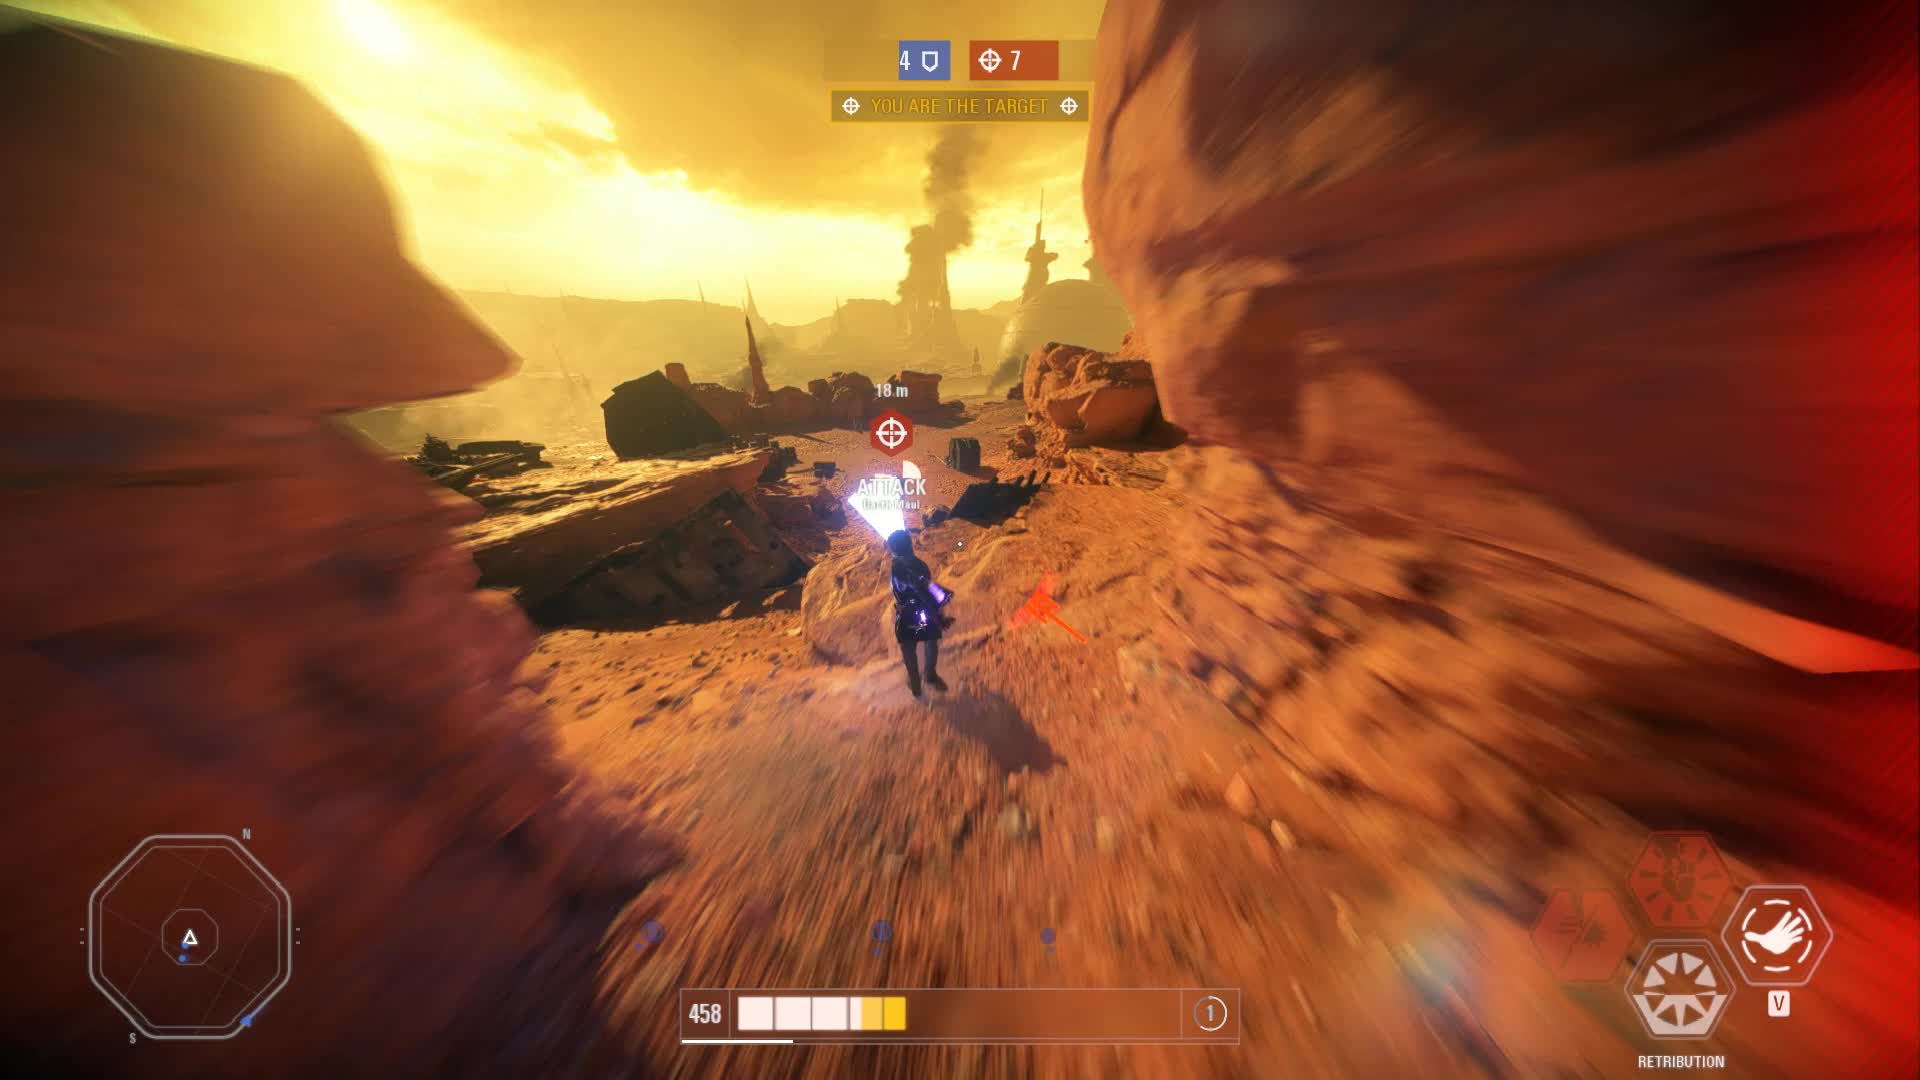 starwarsbattlefront, not op btw GIFs